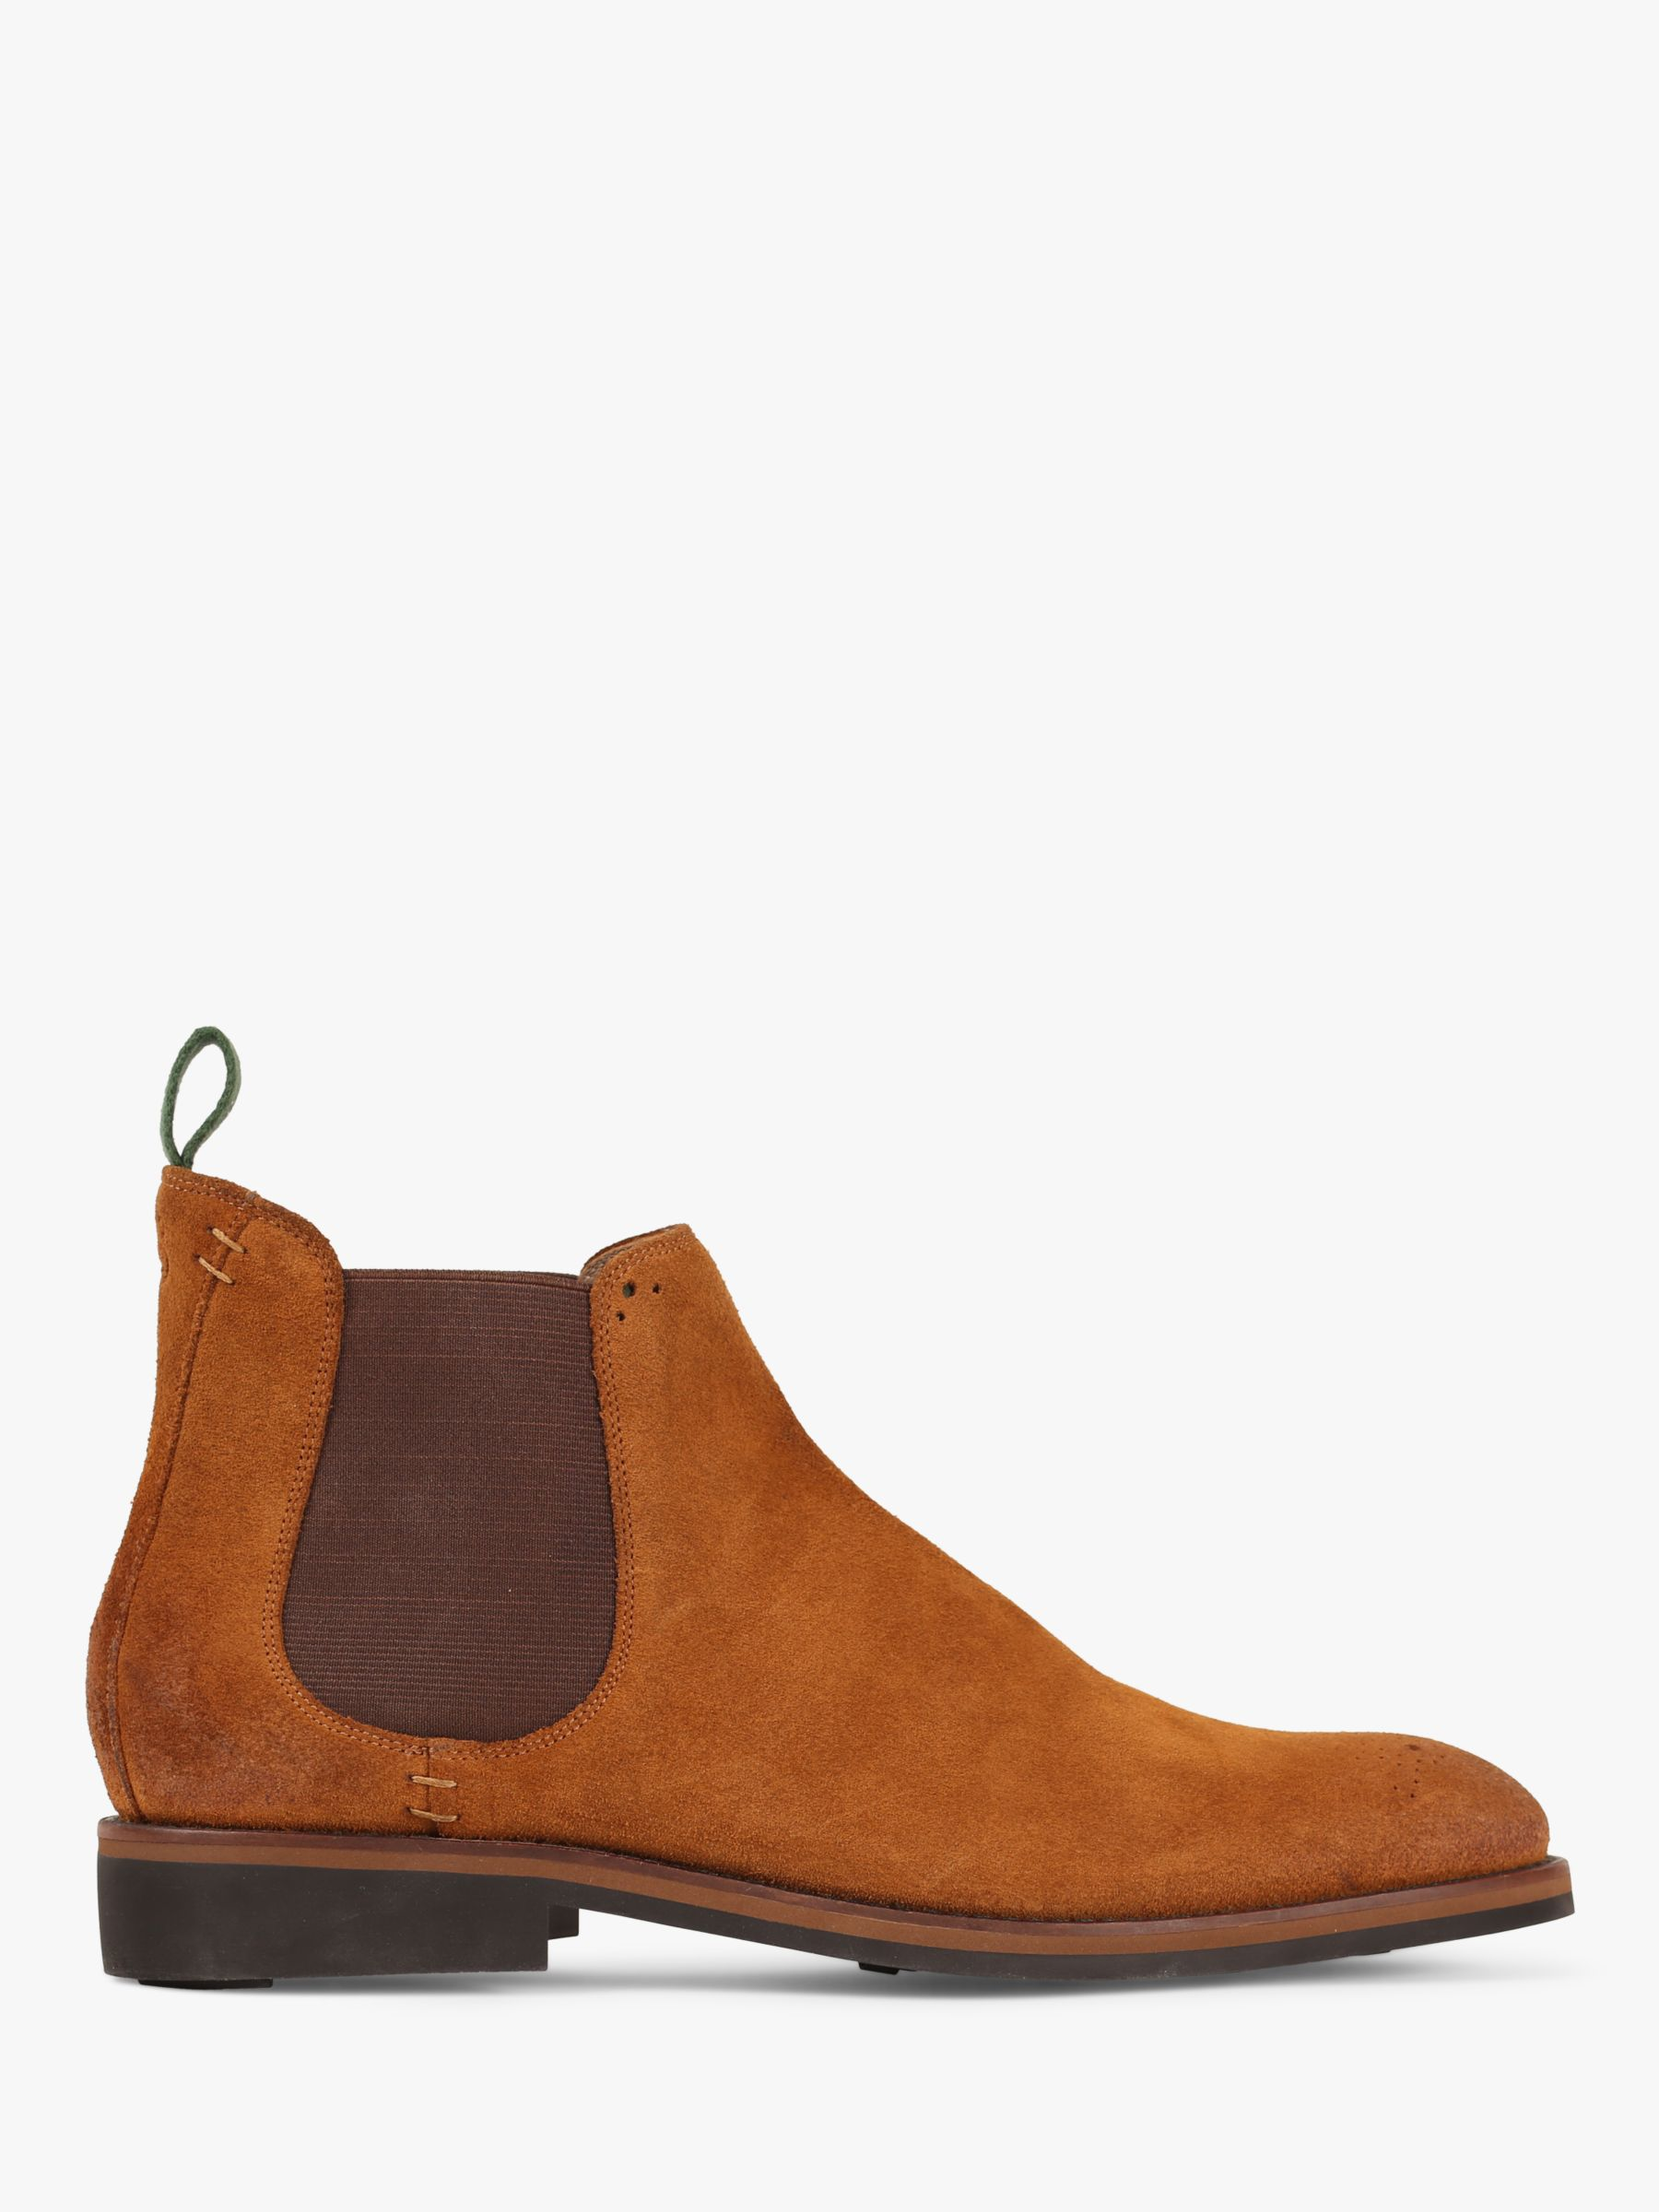 Oliver Sweeney Oliver Sweeney Burrows Suede Chelsea Boots, Whiskey